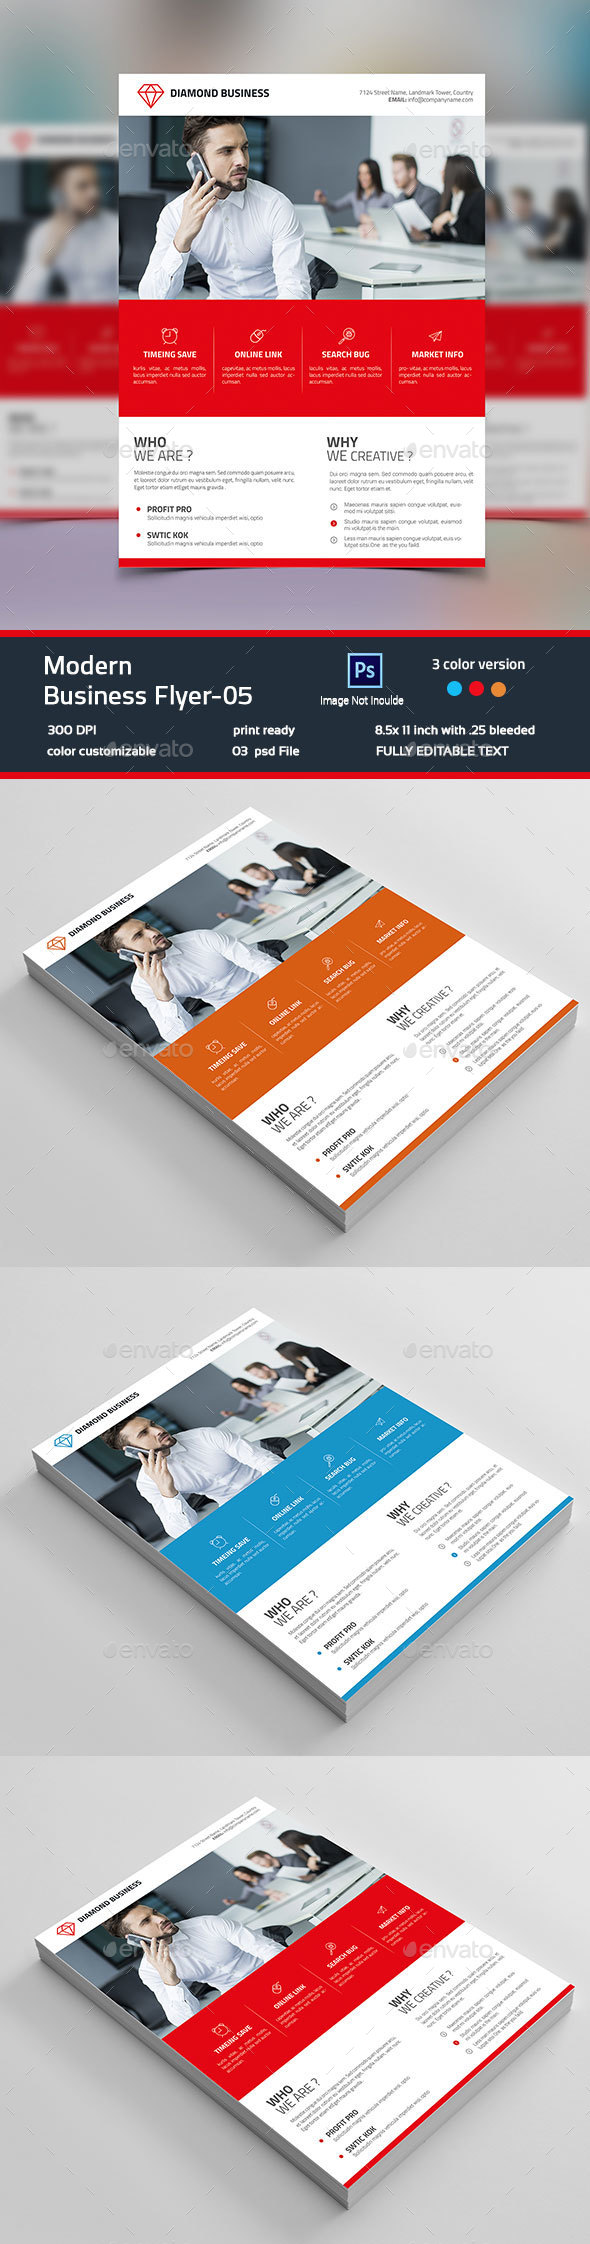 Modern Business Flyer-05 - Flyers Print Templates